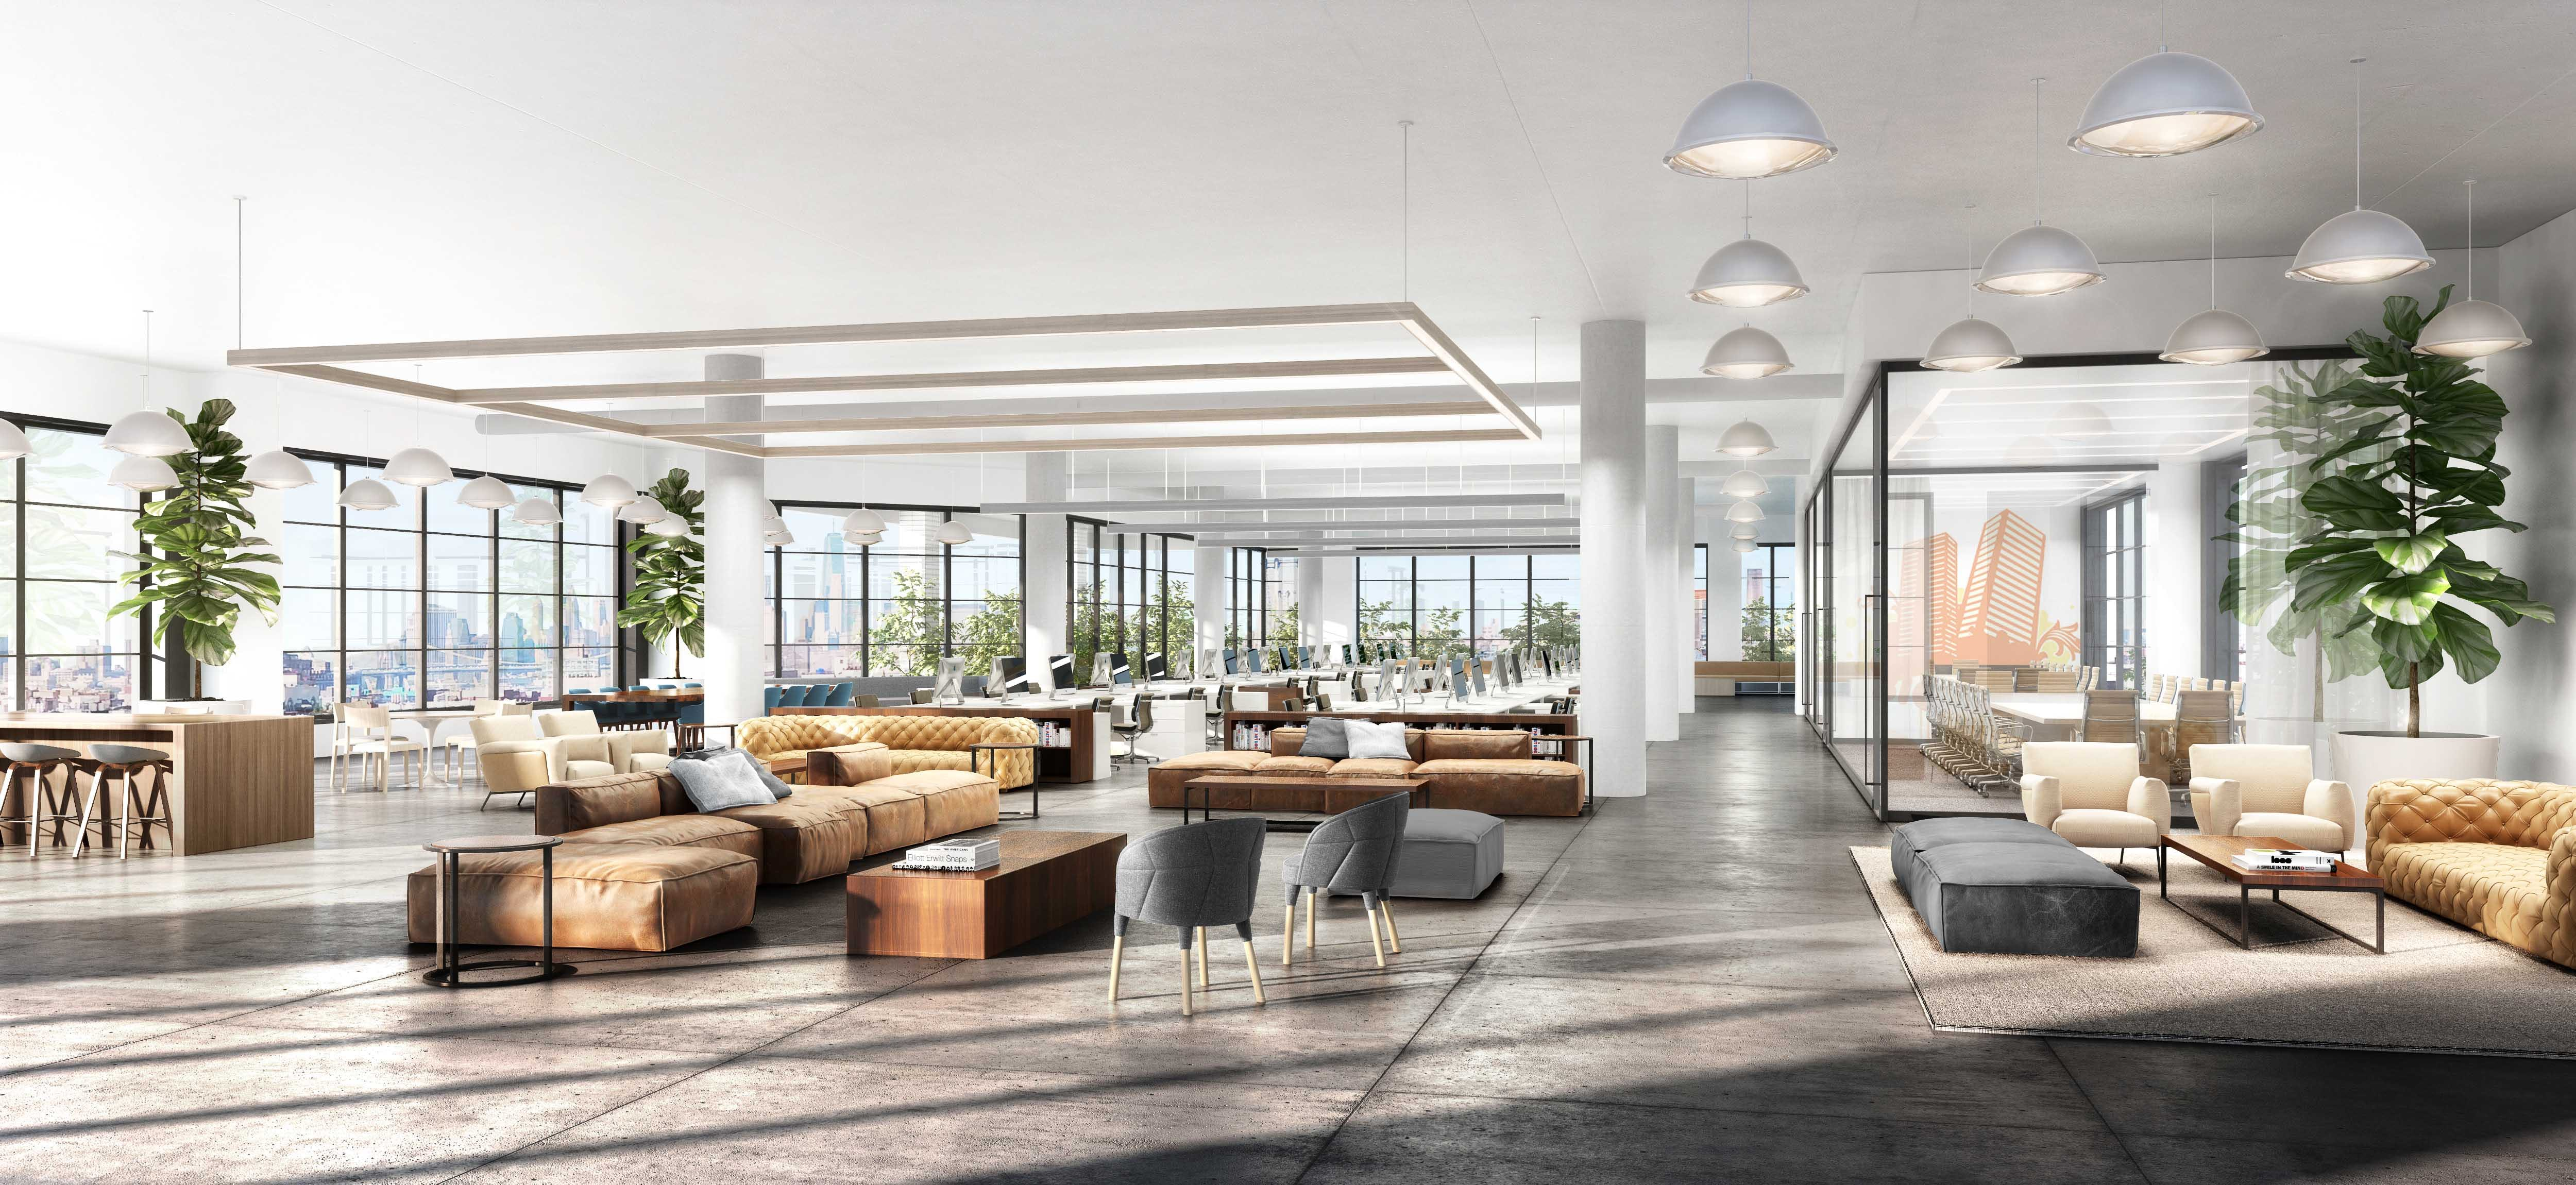 The Dime, Brooklyn NY | Fogarty Finger Architecture PLLC | Archinect